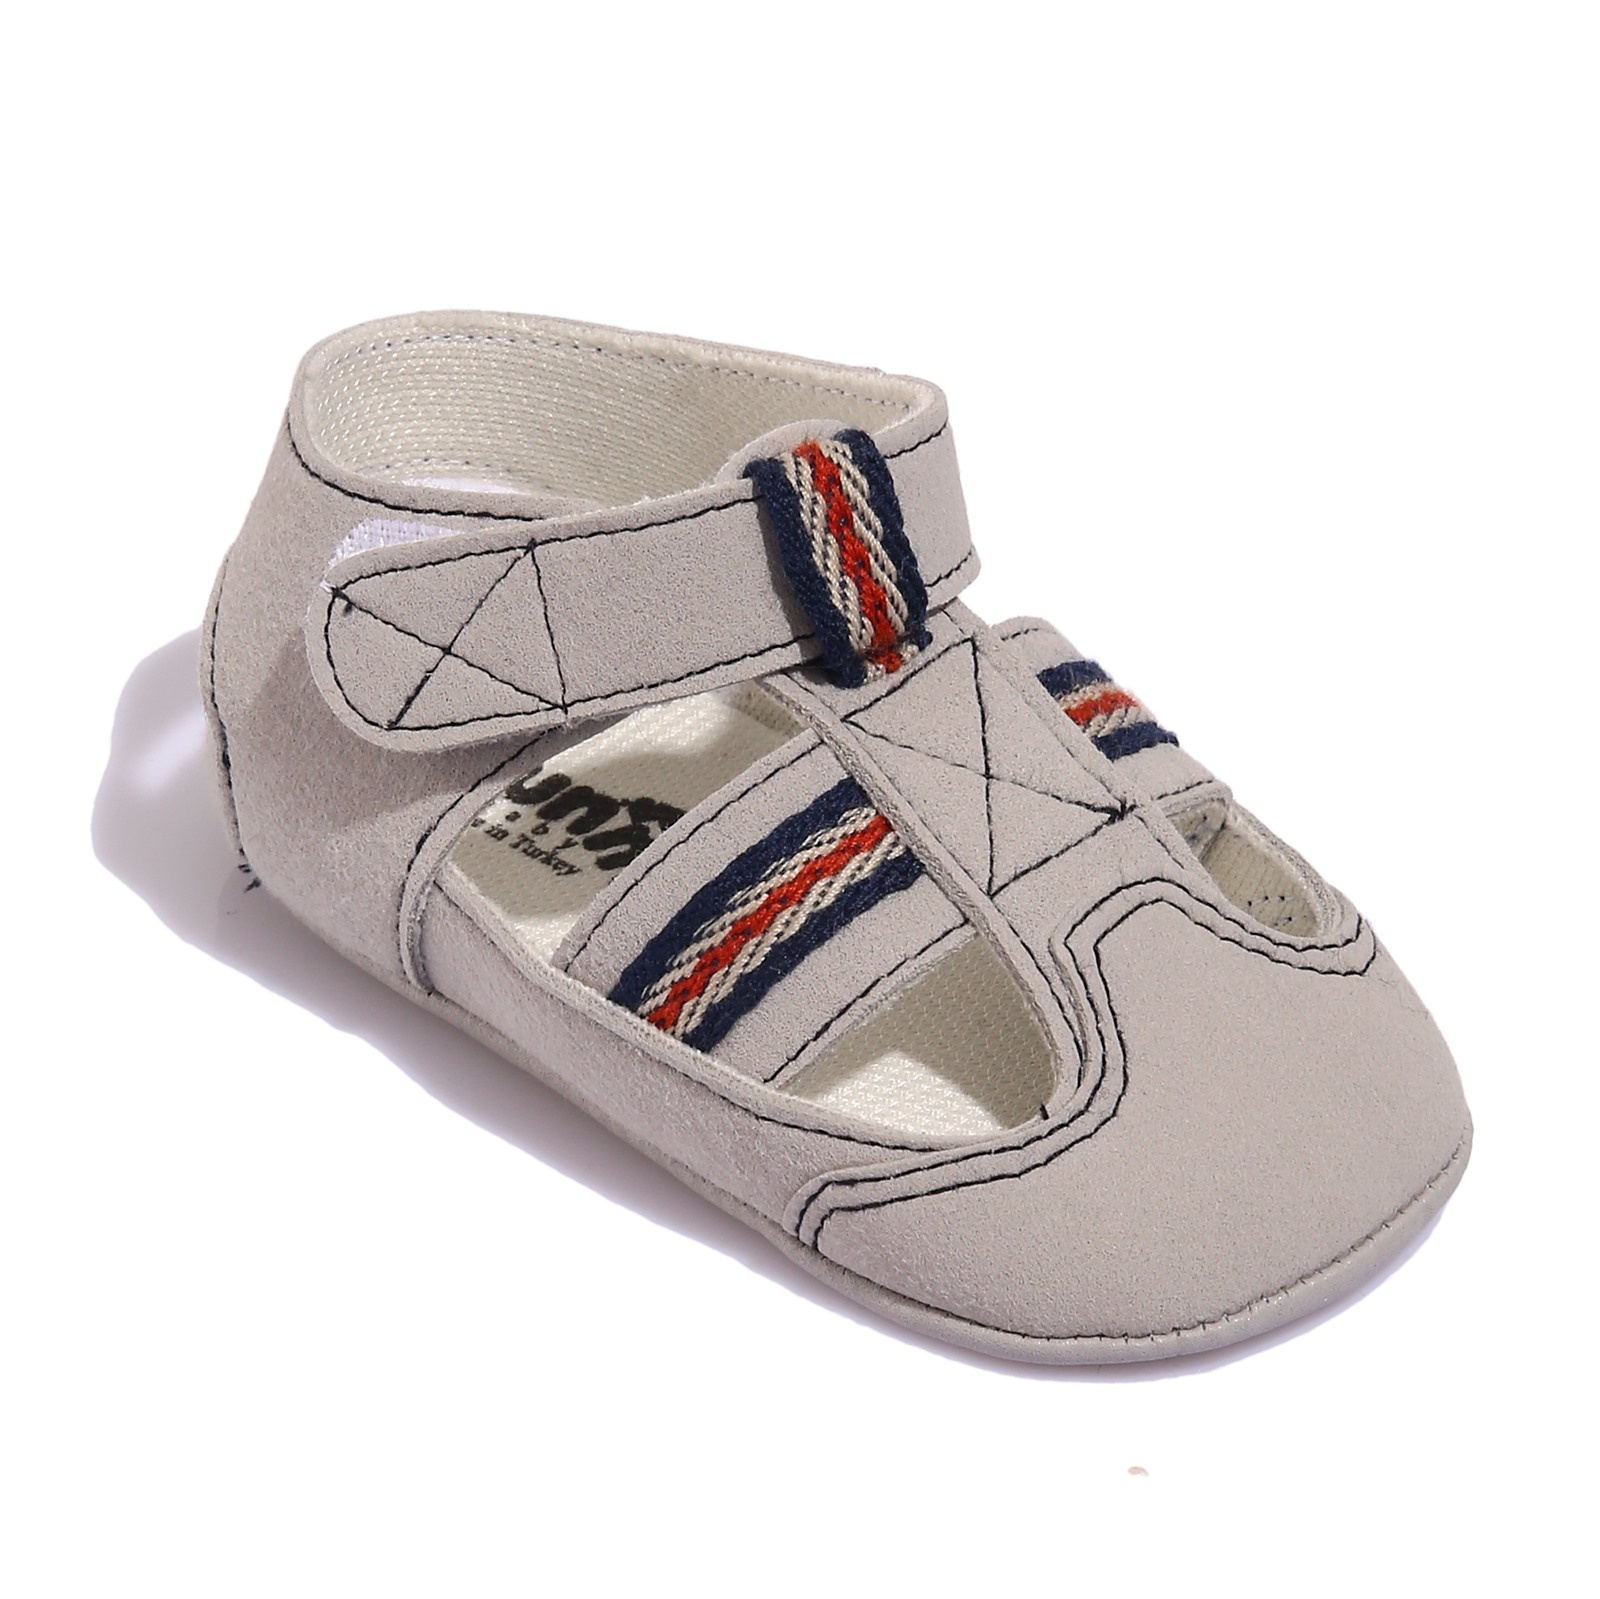 Ebebek Funny Patik Summer Baby Boy Shoes